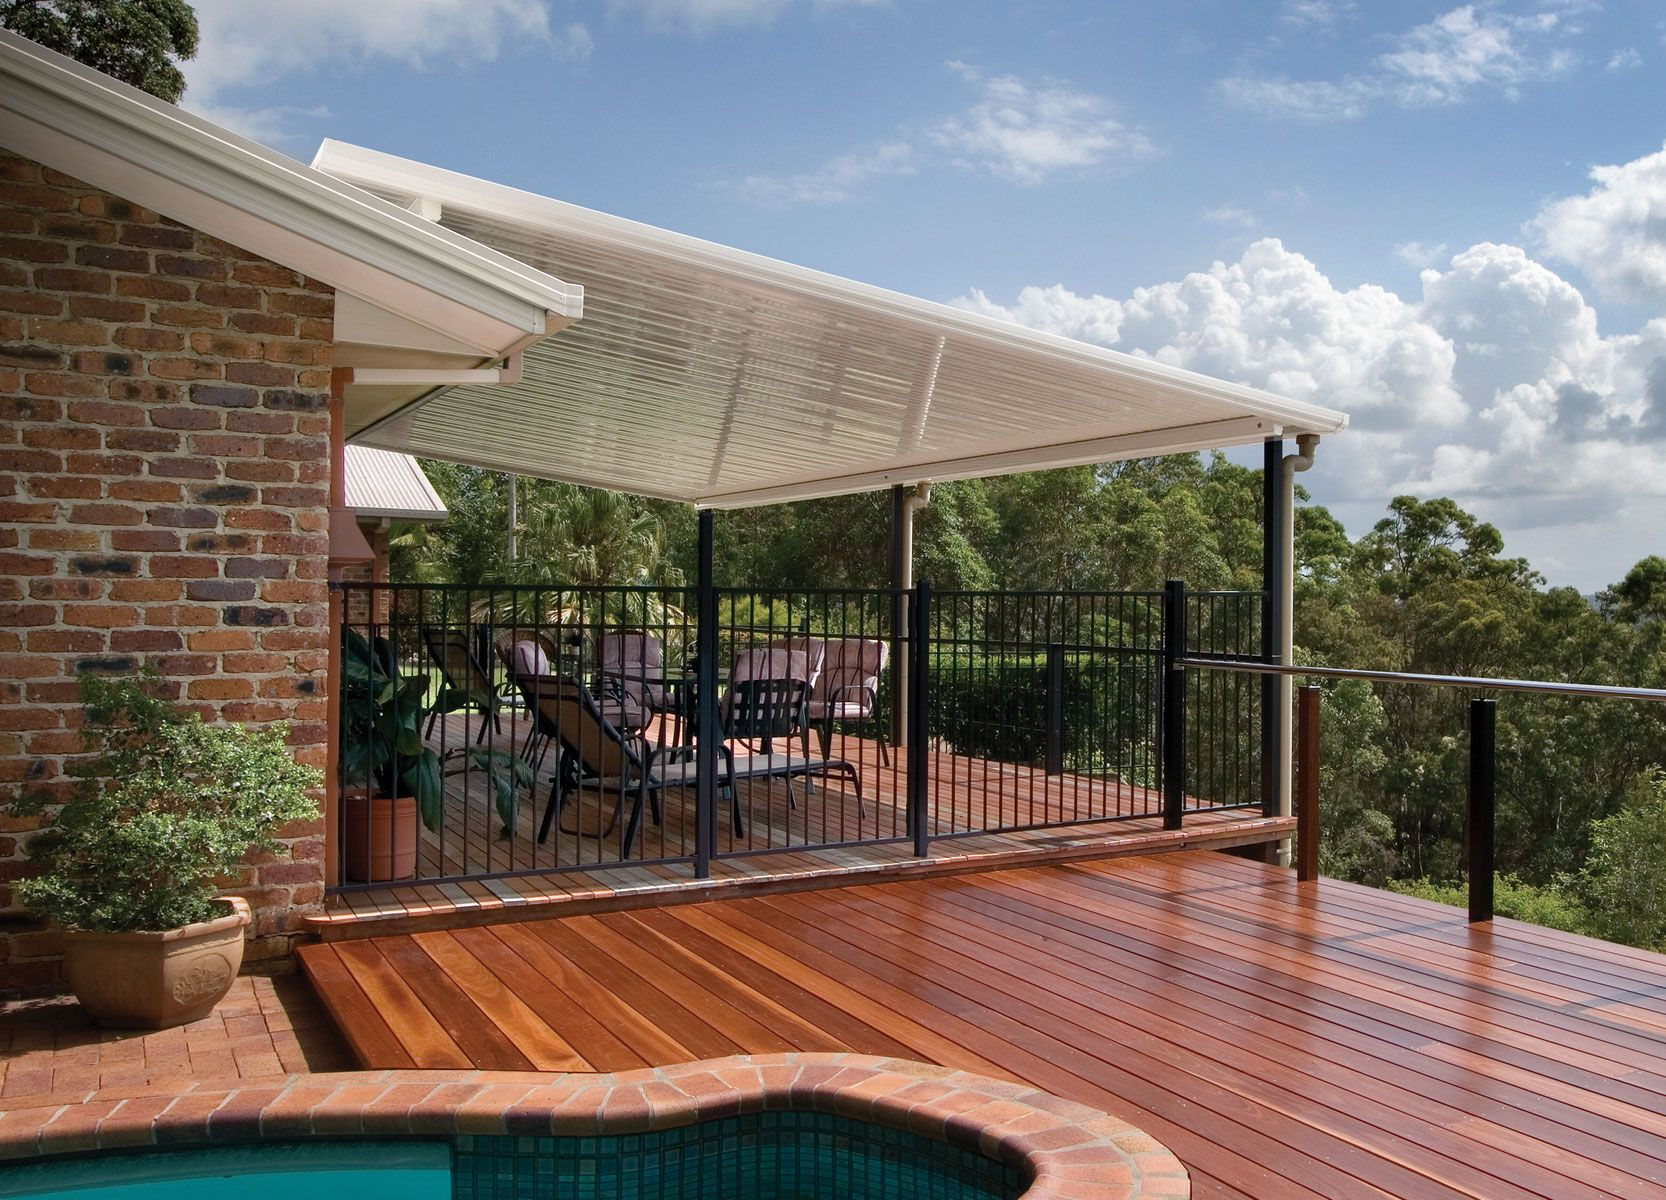 Buy a Carport Deck or Patio for your home Patio roof